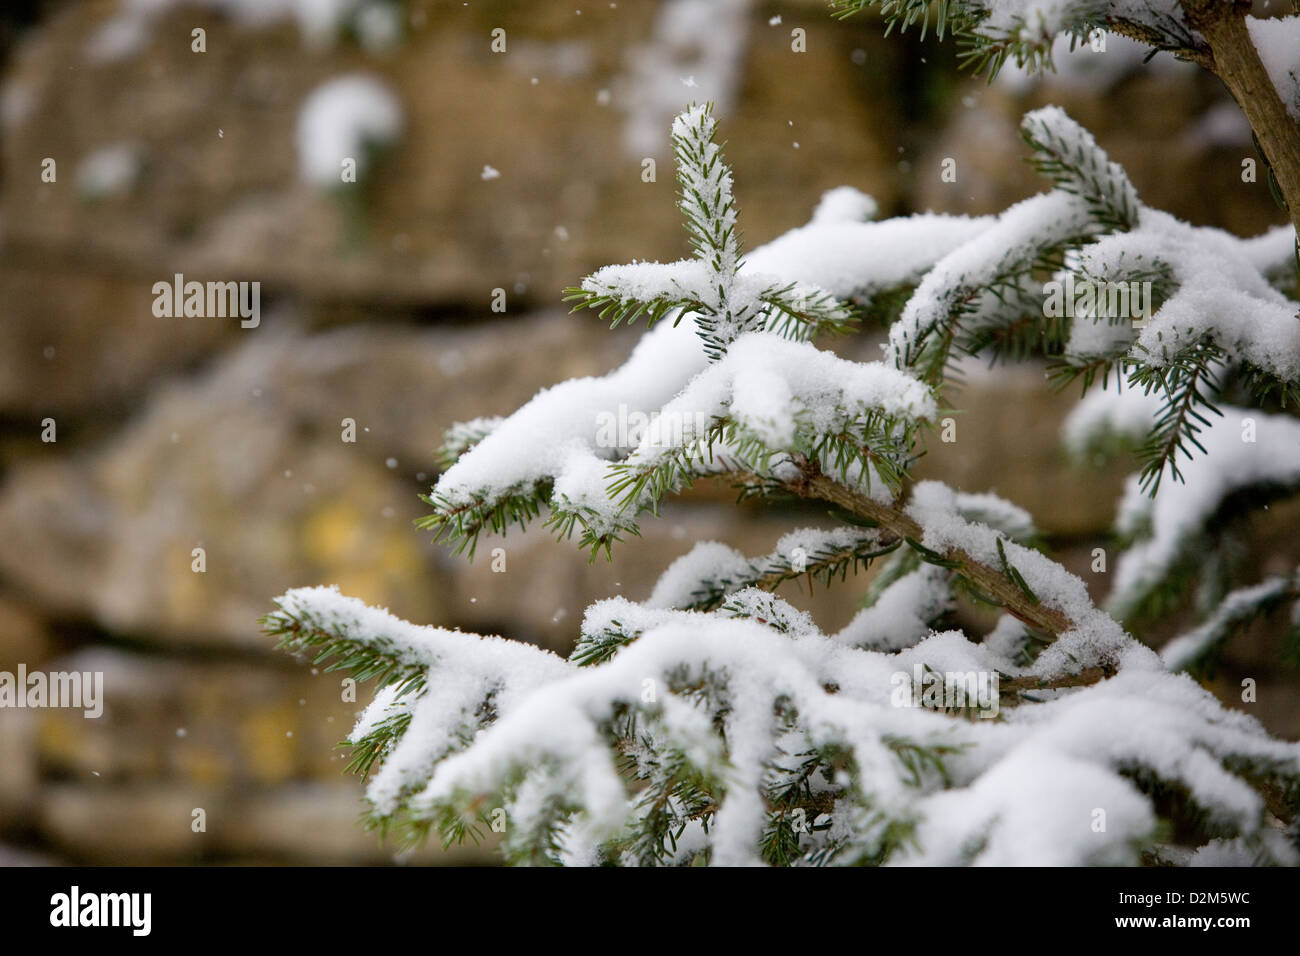 Snow flakes falling on Norway Spruce (Picea abies) Christmas tree with out of focus Cotswold stone wall in background. - Stock Image